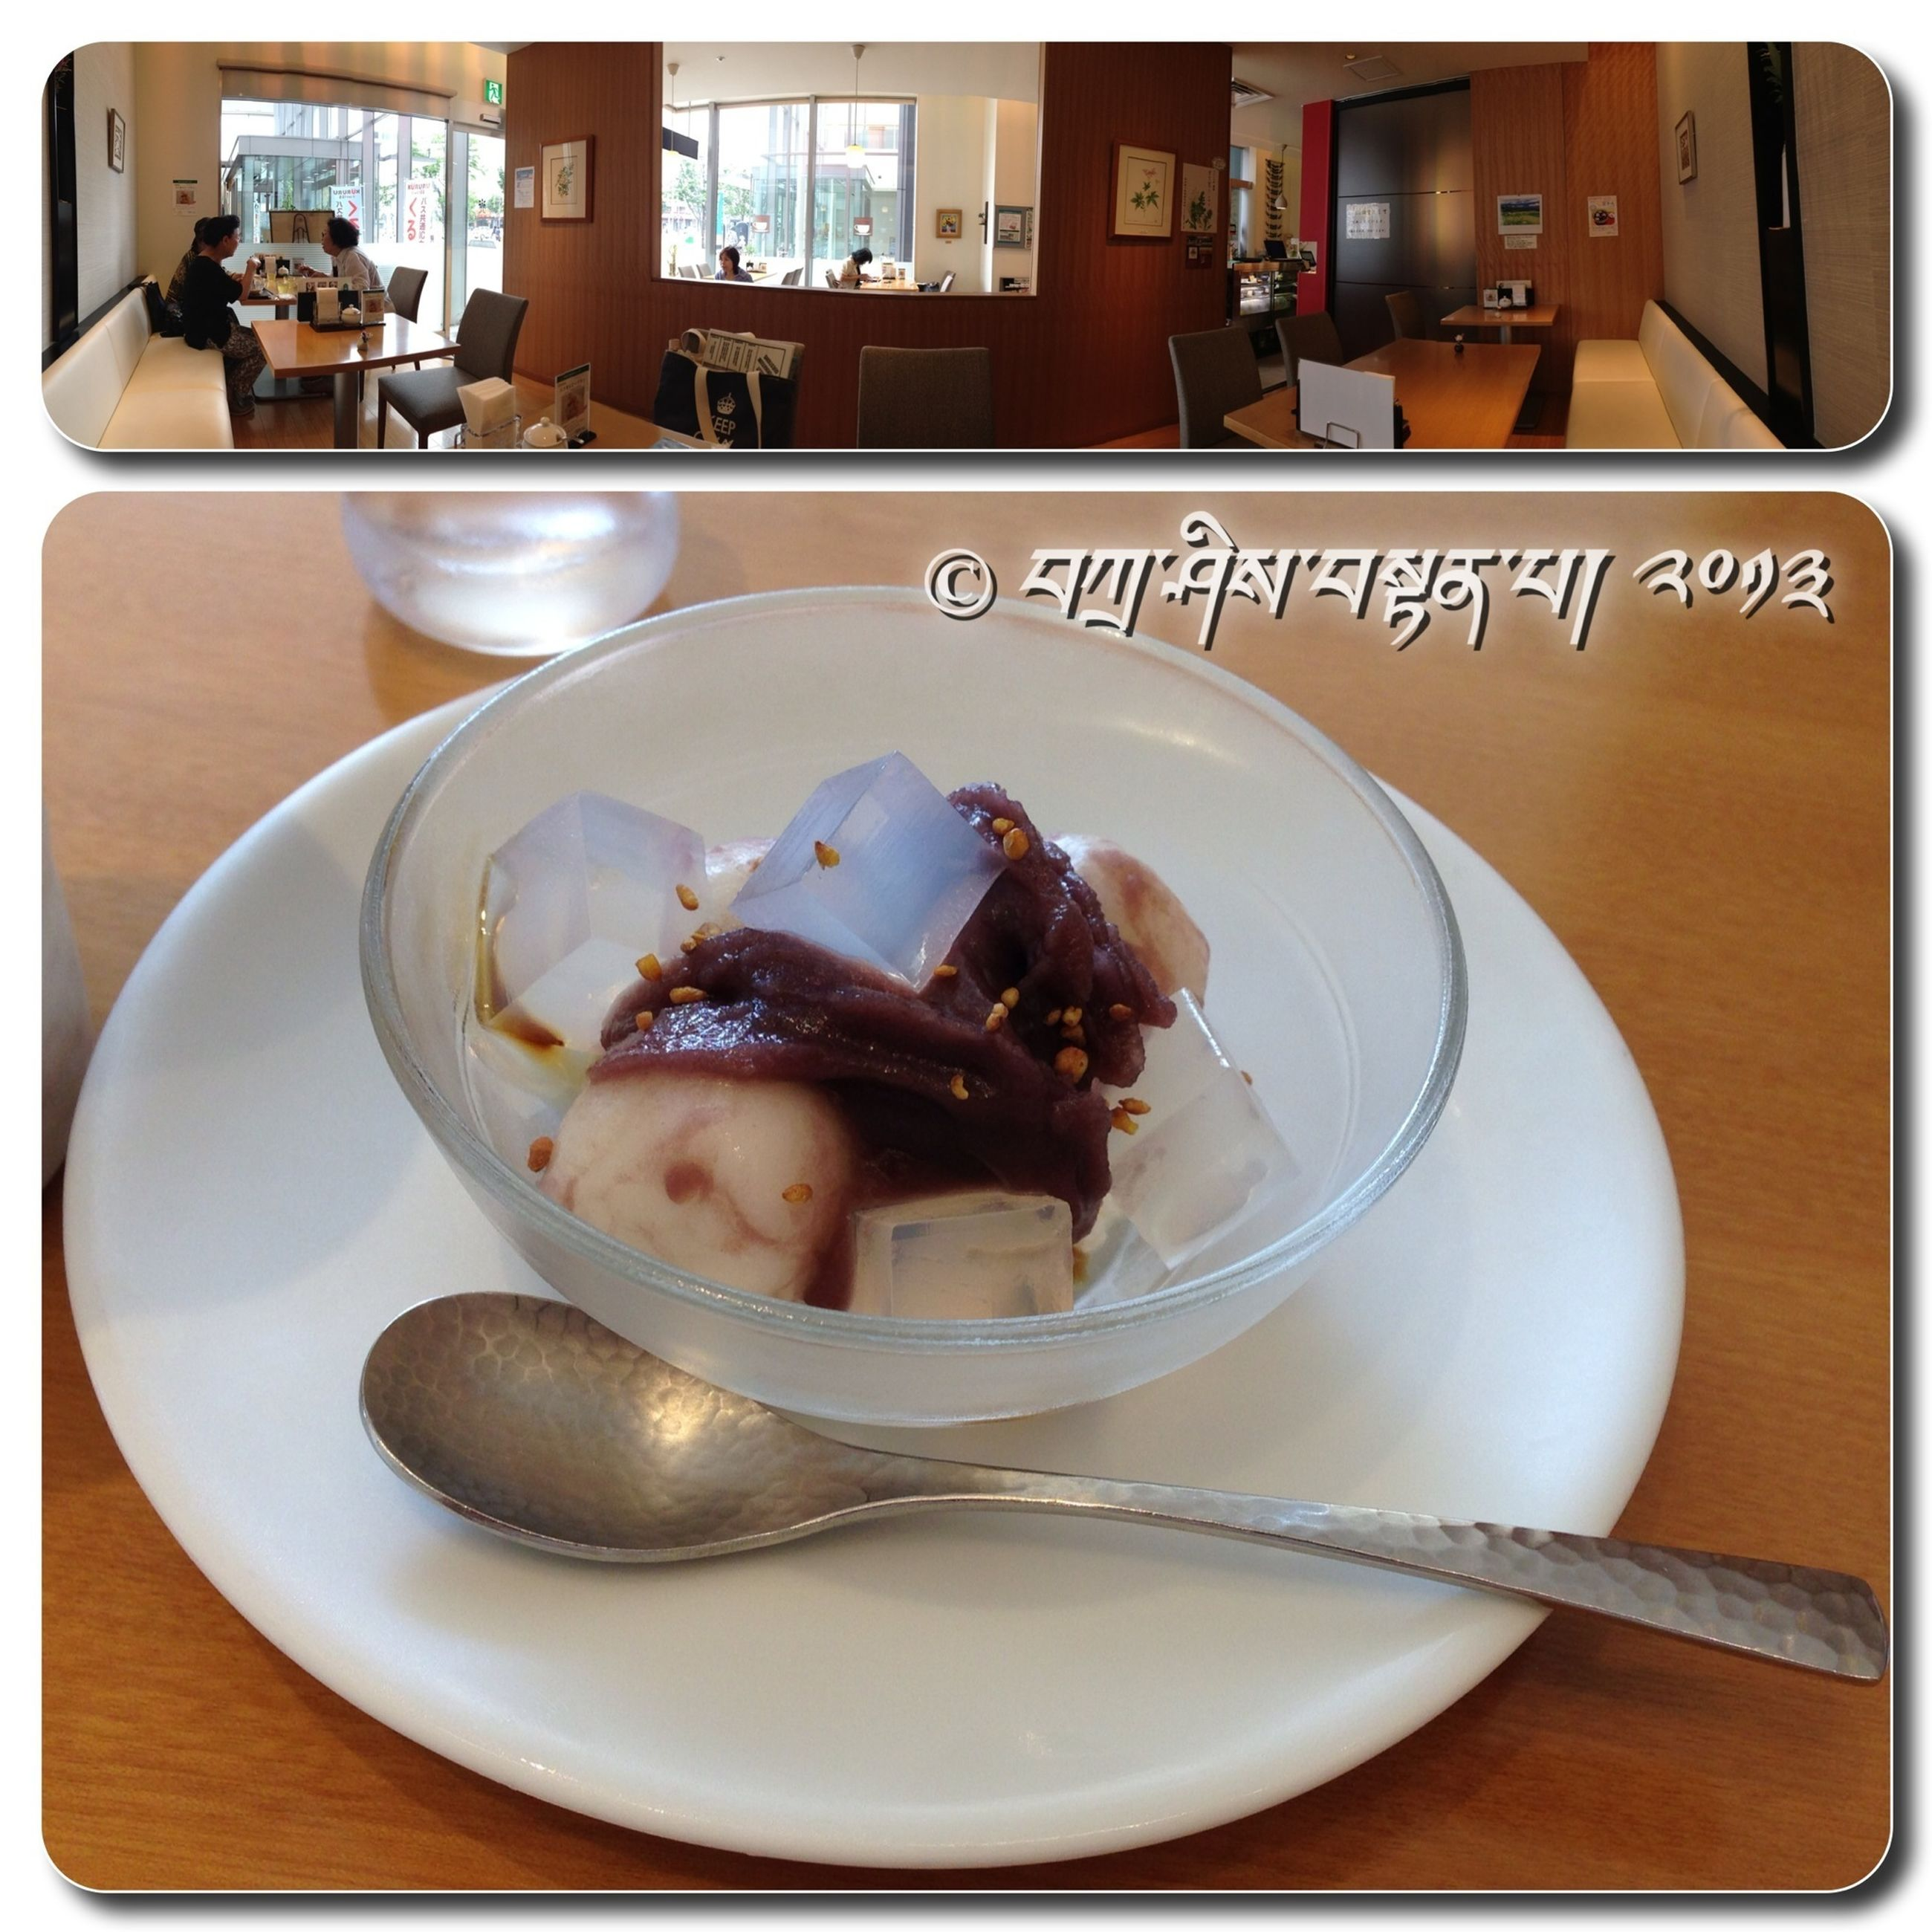 indoors, food and drink, table, plate, drink, still life, food, sweet food, coffee cup, refreshment, restaurant, freshness, dessert, ready-to-eat, close-up, indulgence, high angle view, communication, spoon, unhealthy eating